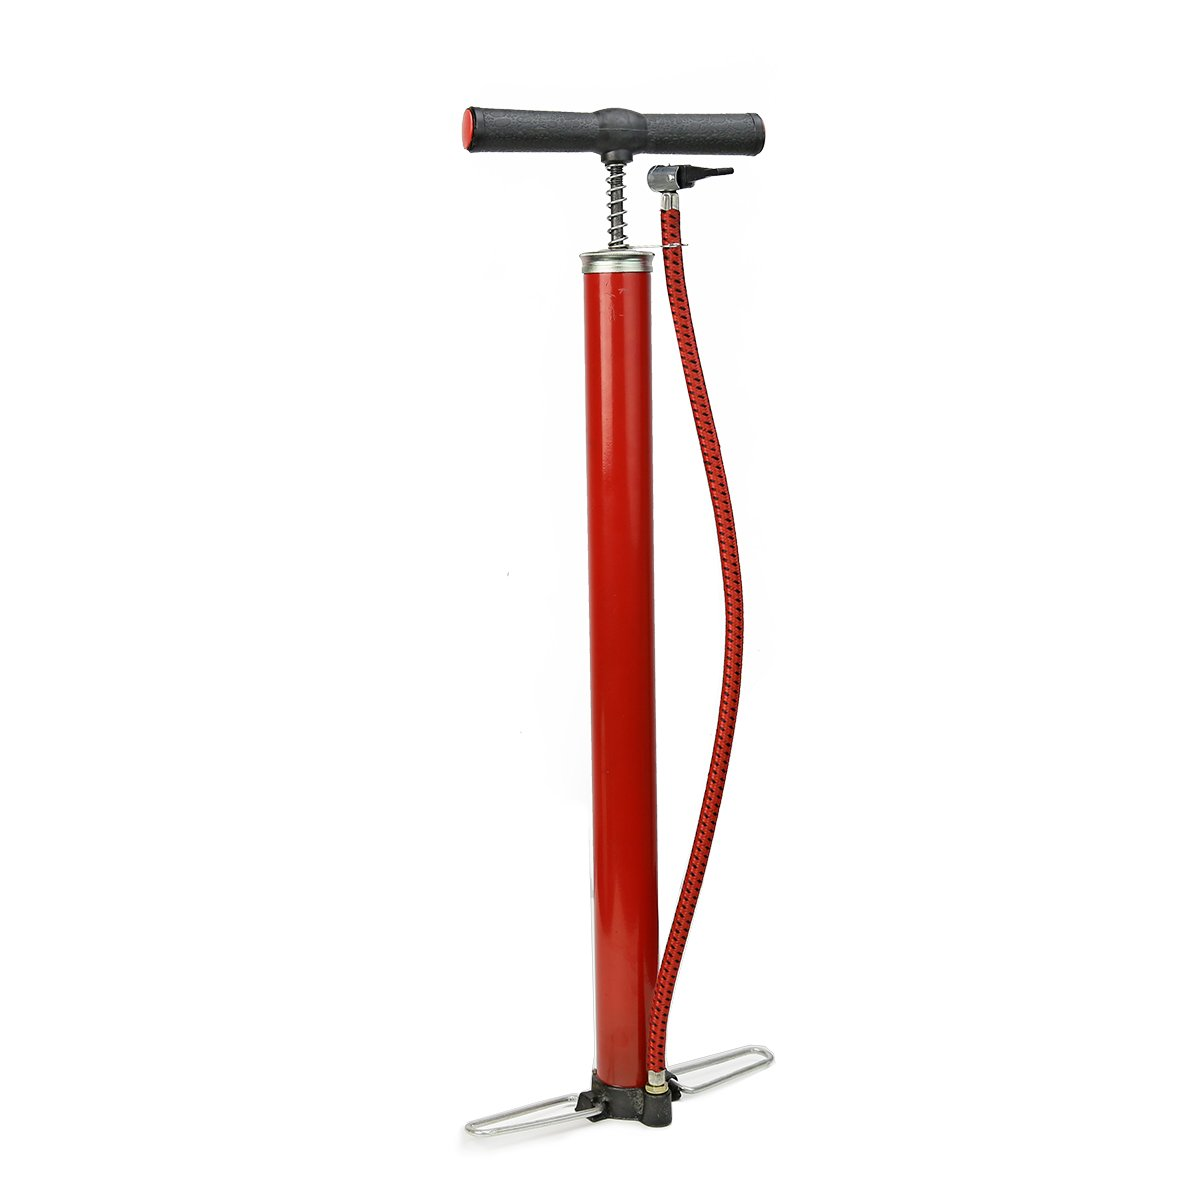 XtremepowerUS Hand Pump Bike Bicycle Deluxe Set of 20